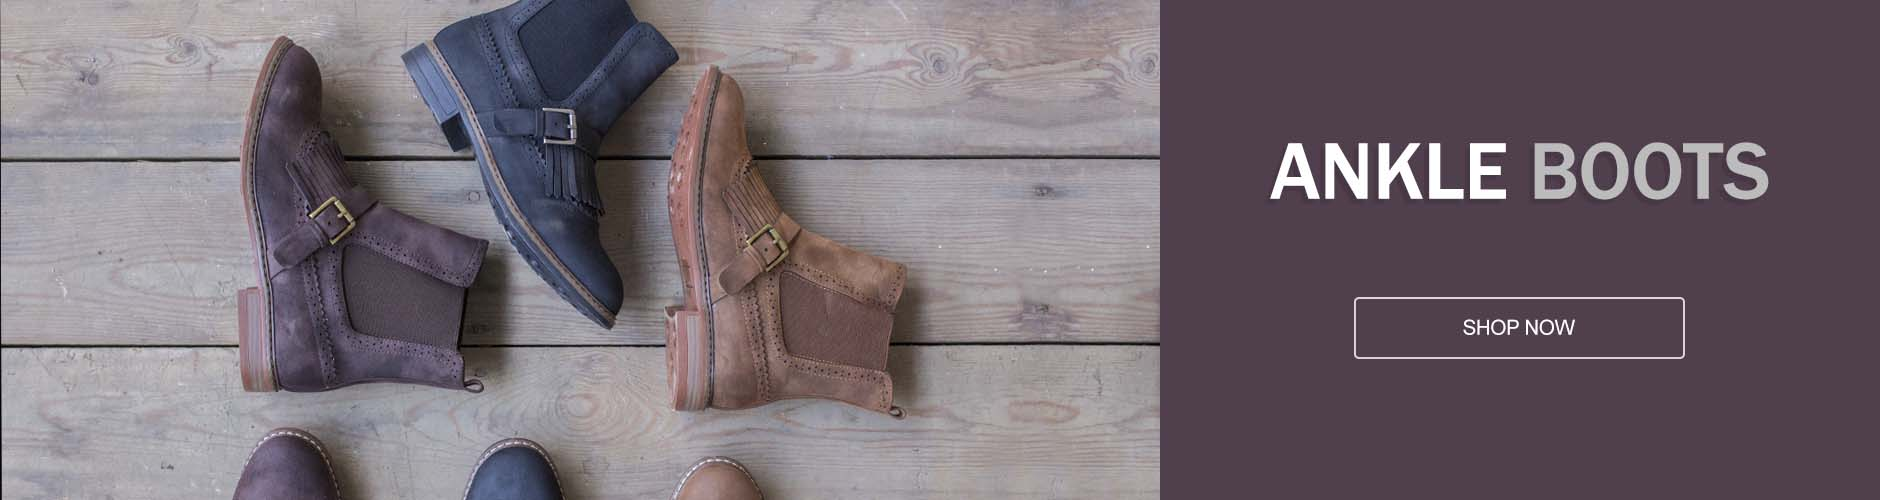 Ankle Boots Shop Now